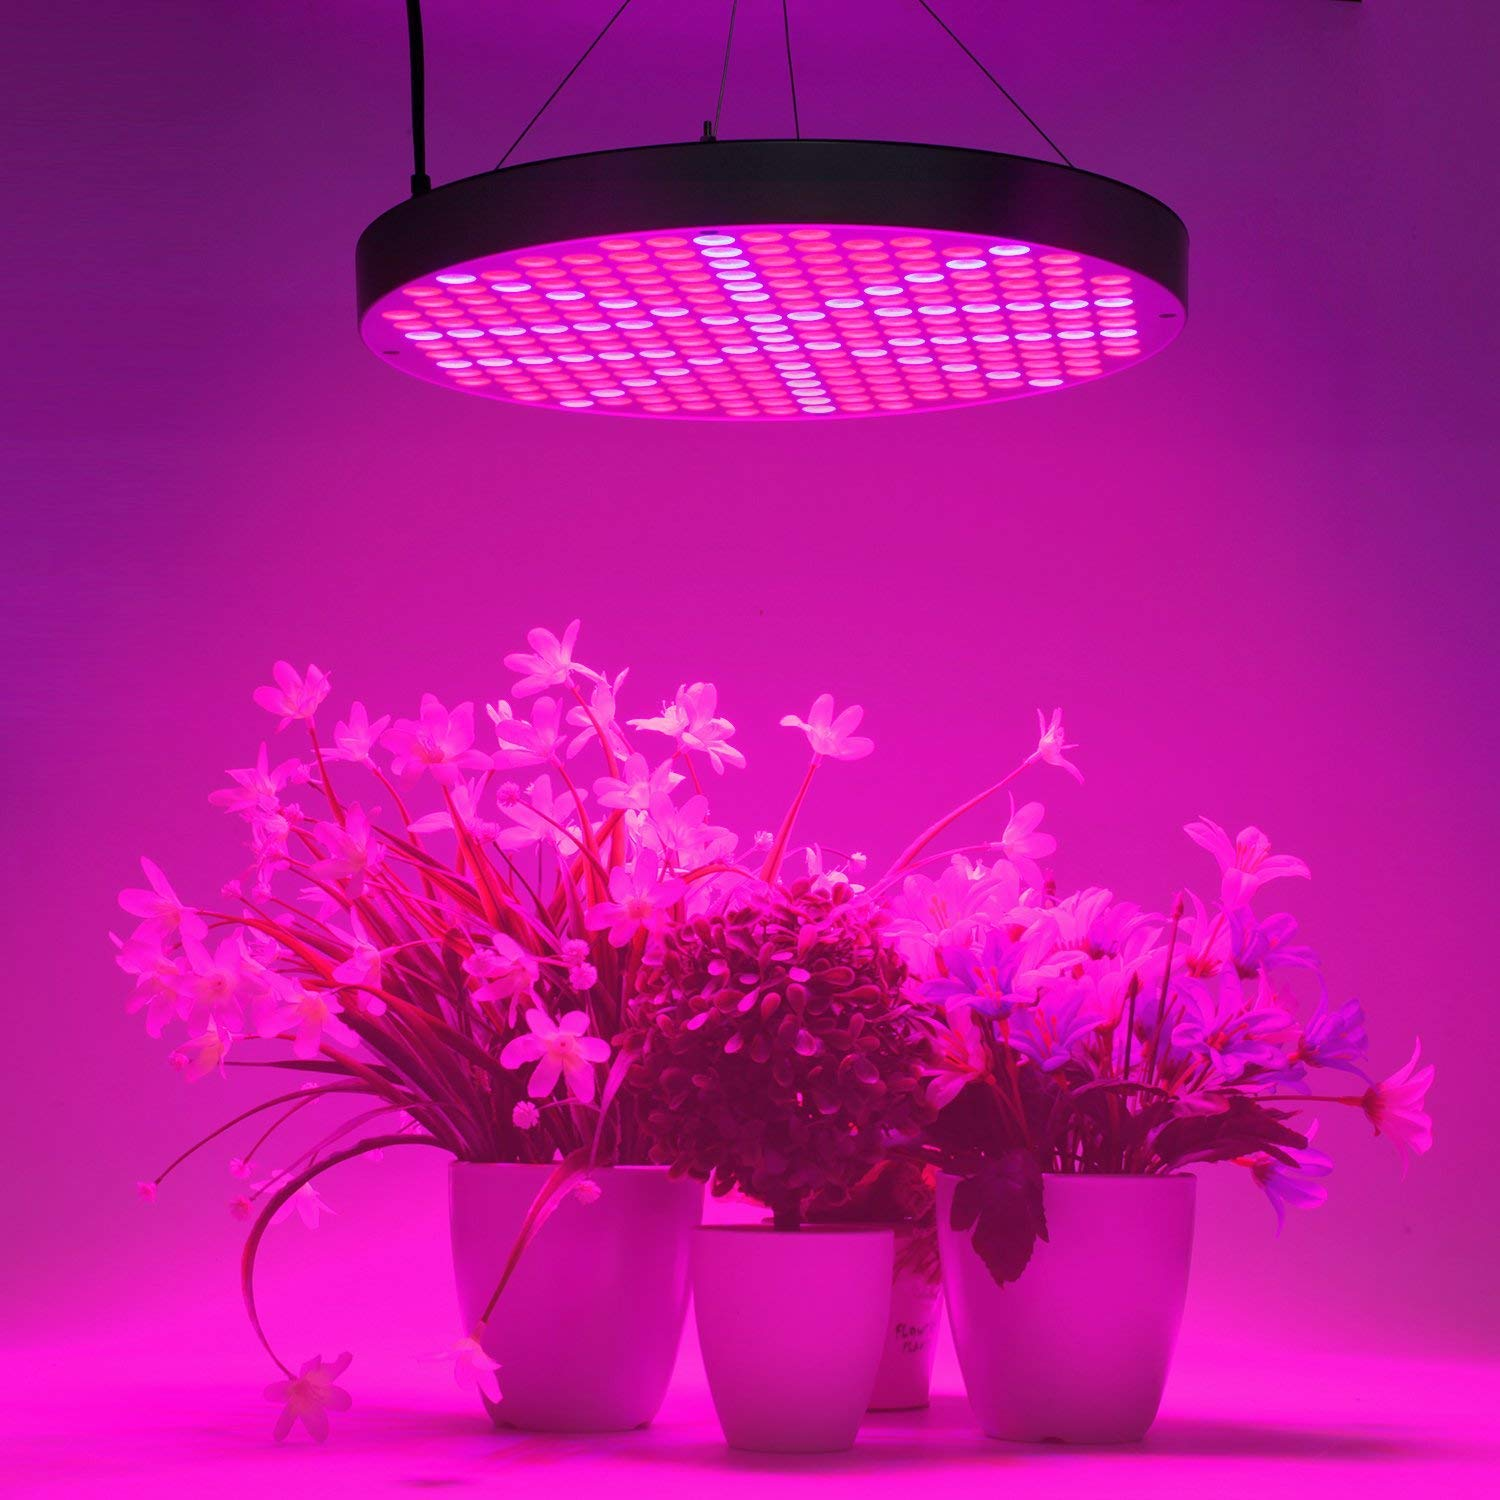 Power Cord and Hanging Kits only for The Shengsite 75W LED Plant Grow Light